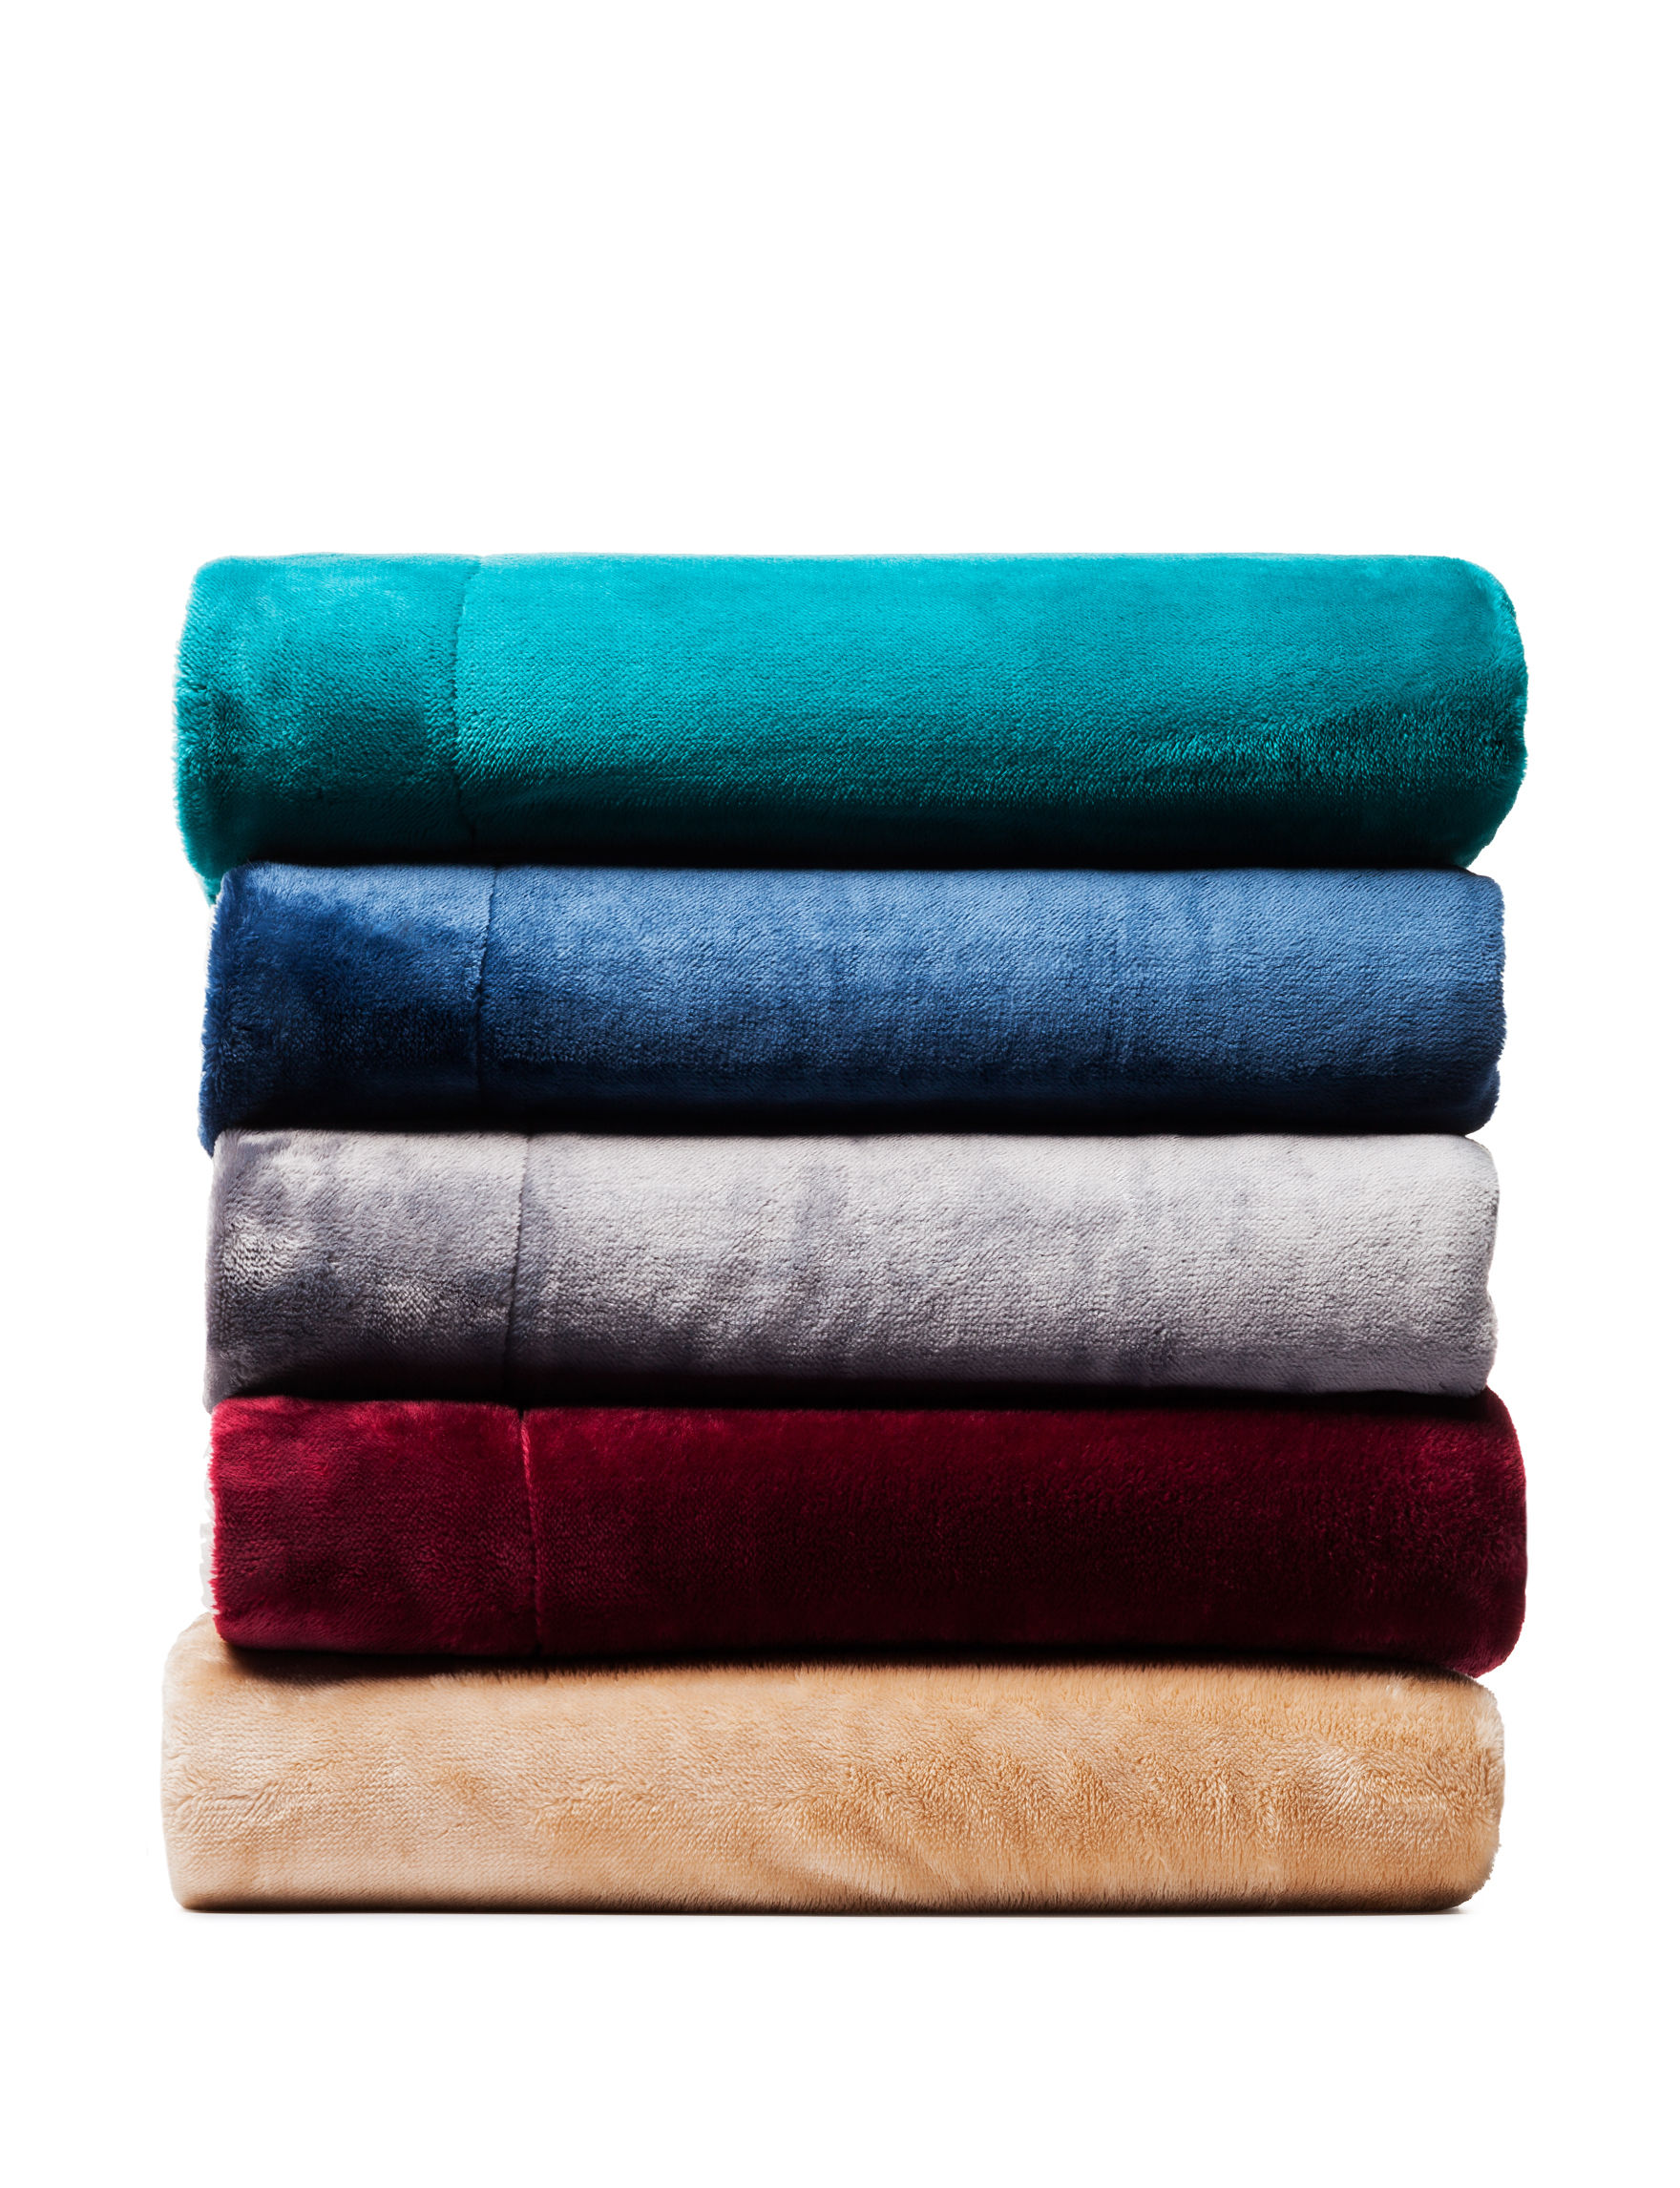 Great Hotels Collection Aqua Blankets & Throws